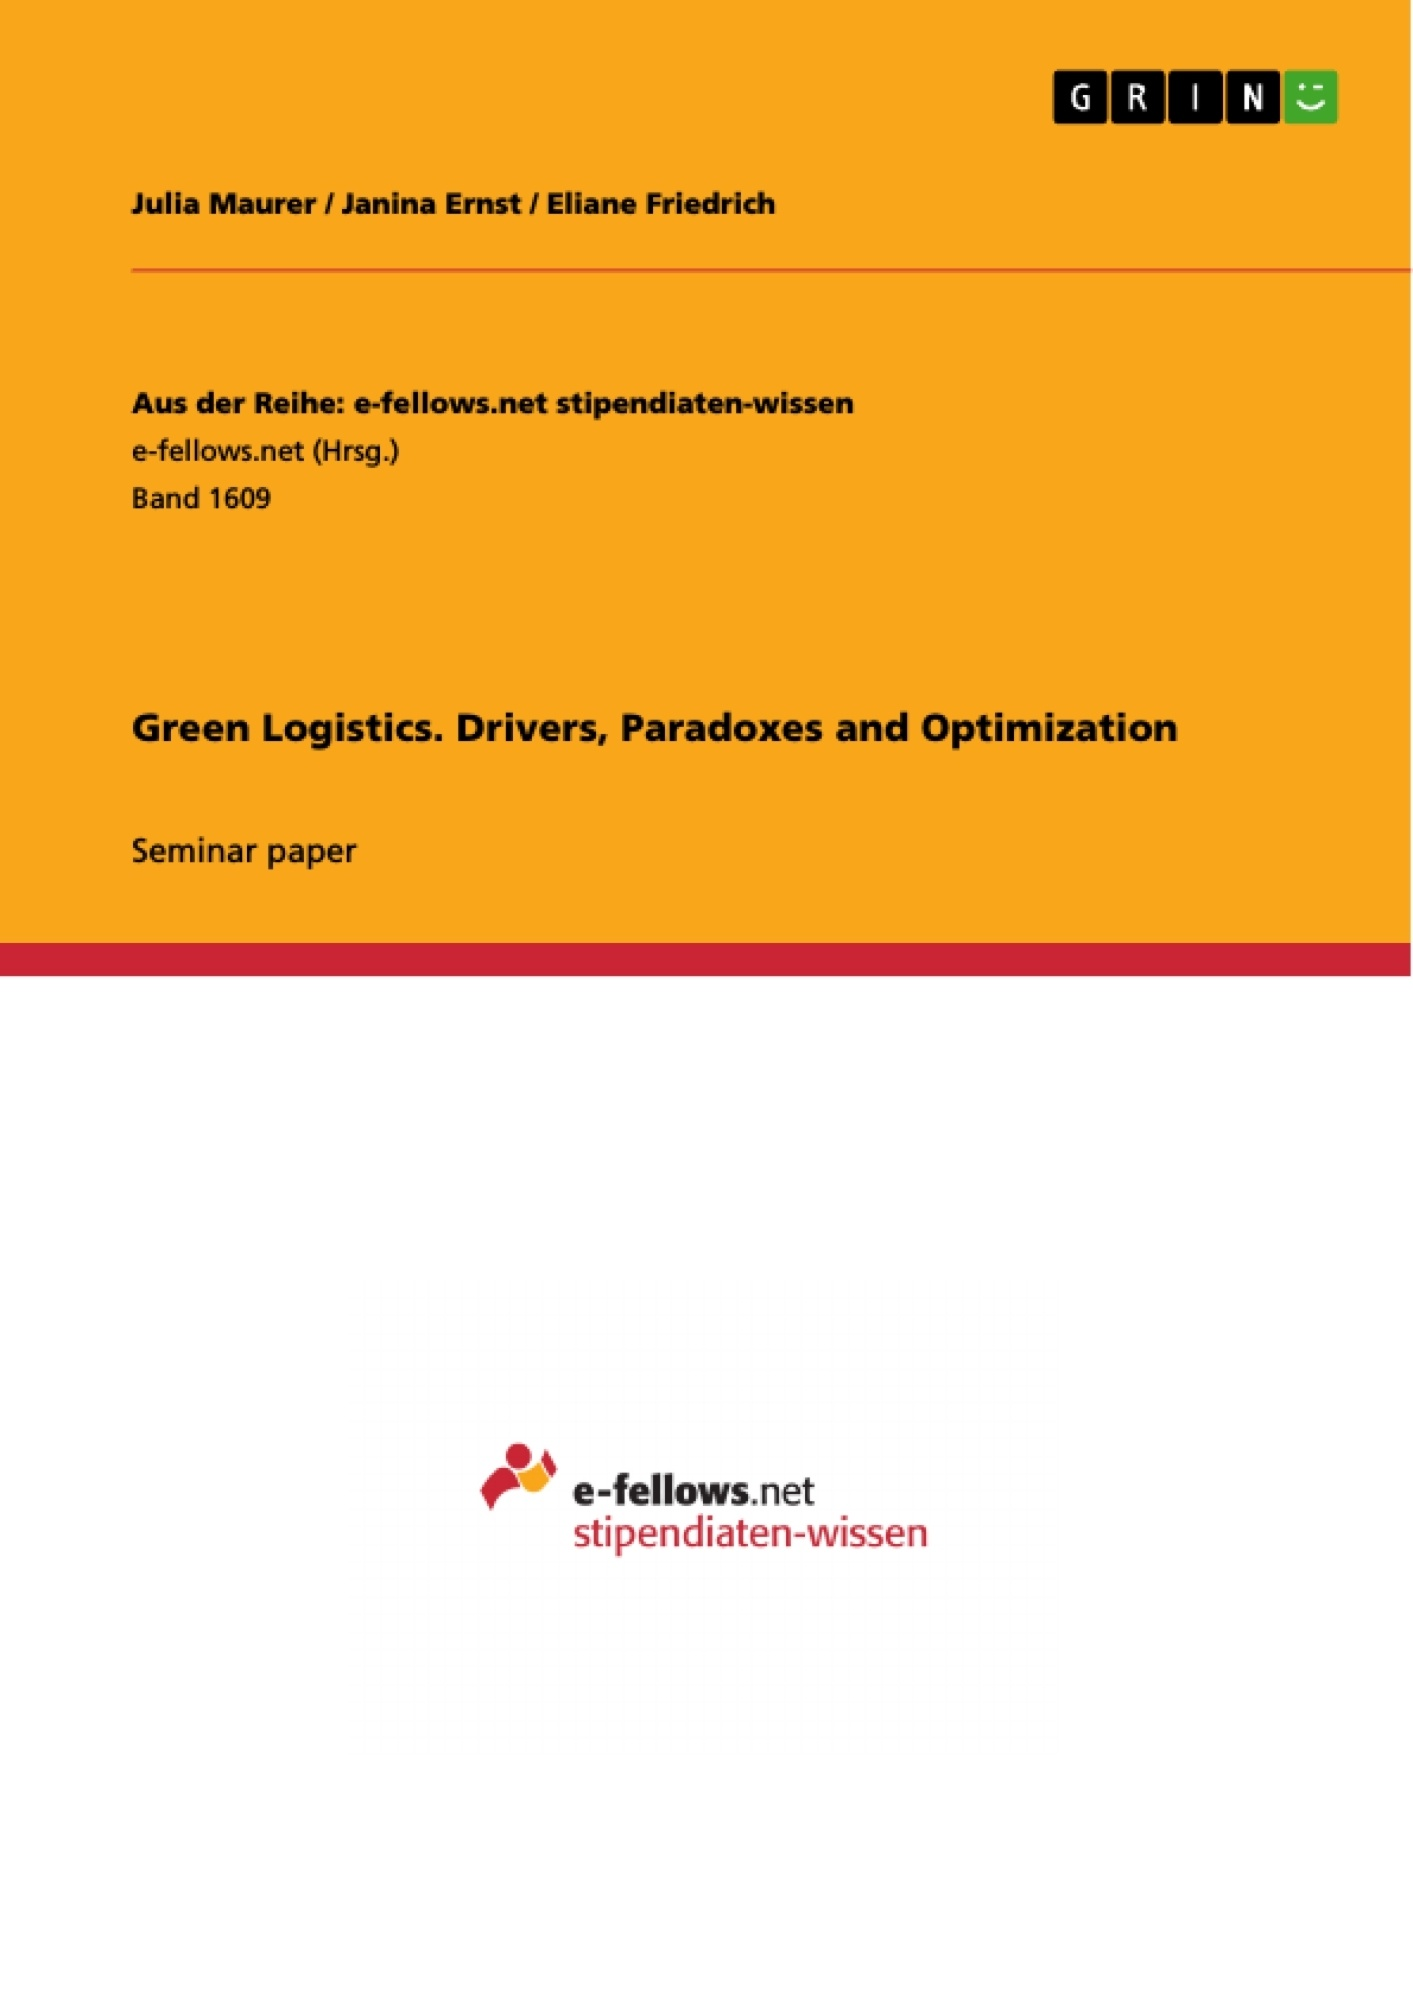 Title: Green Logistics. Drivers, Paradoxes and Optimization